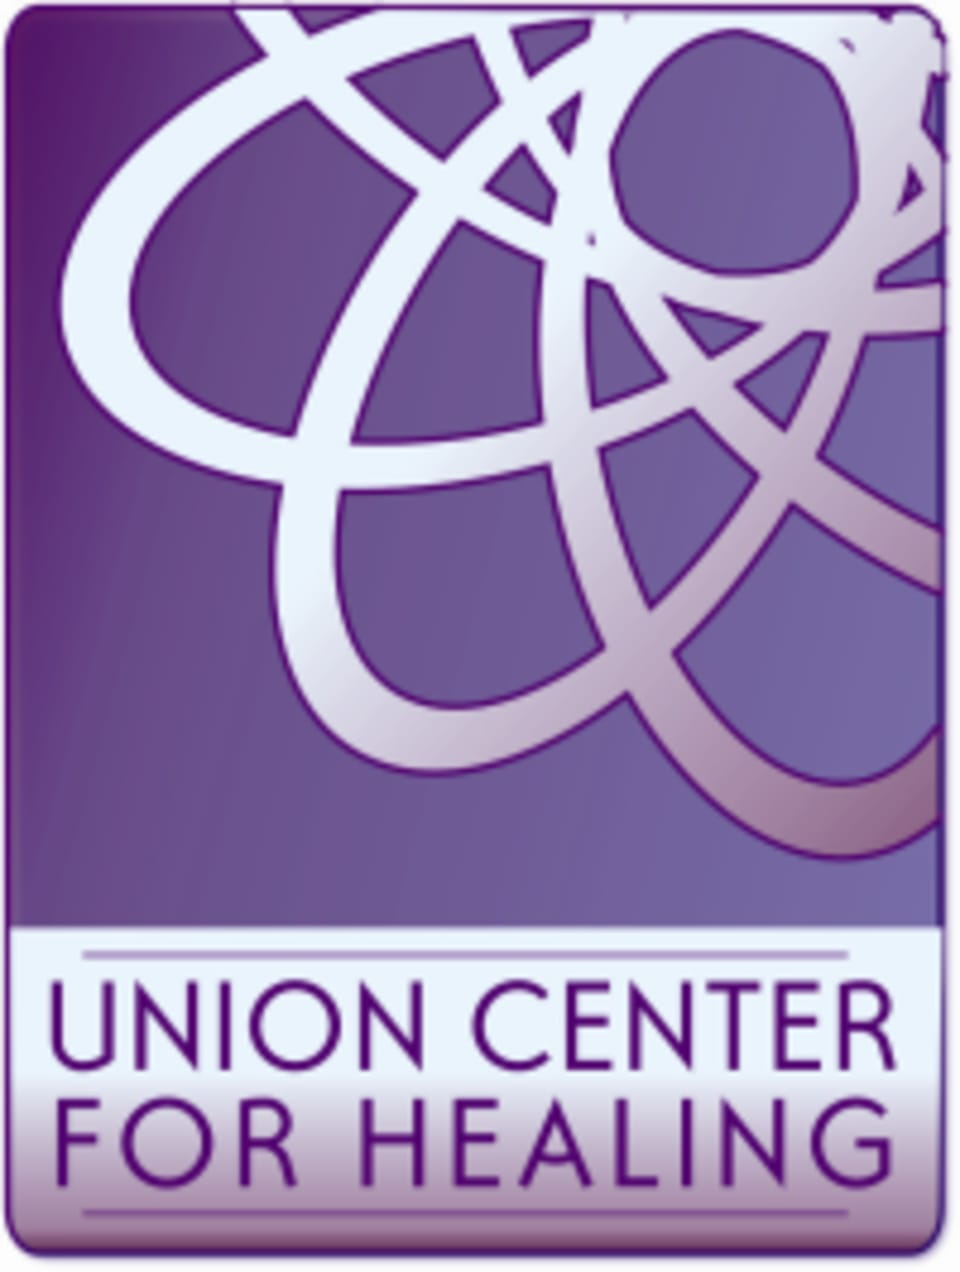 Union Center for Healing logo